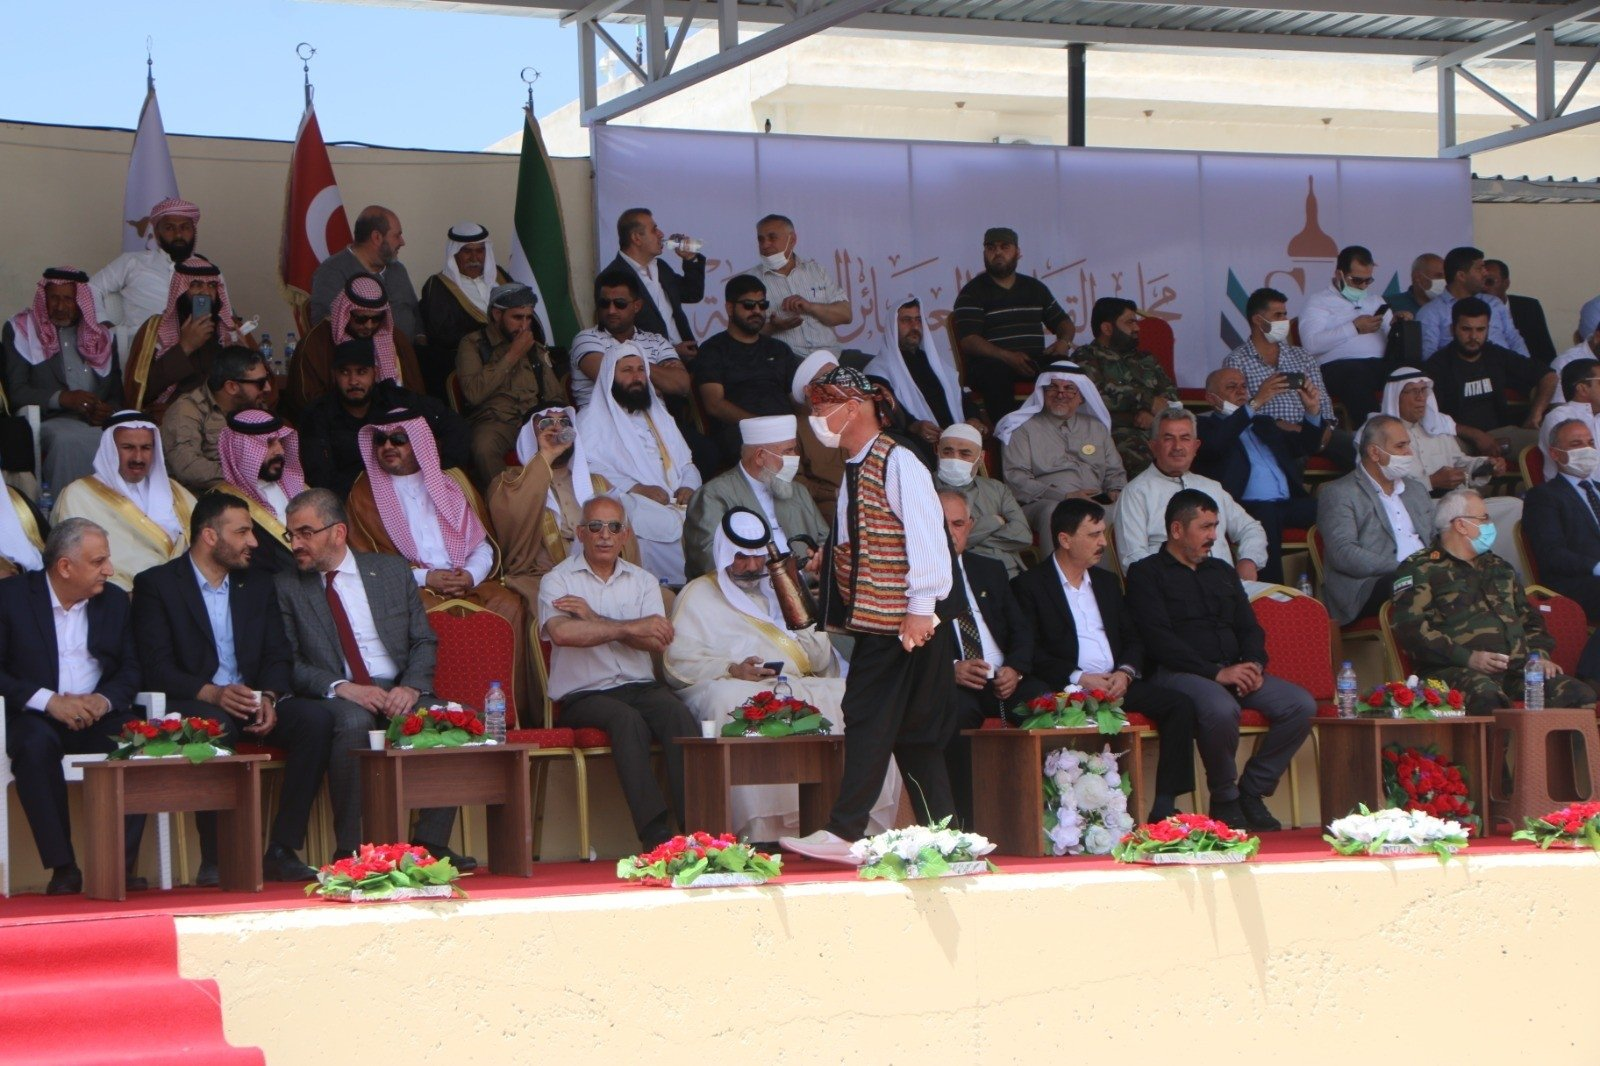 The Syria Clans and Tribes Council (SKAM) holds a meeting in northern Syria's Azaz, May 24, 2021. (IHA Photo)